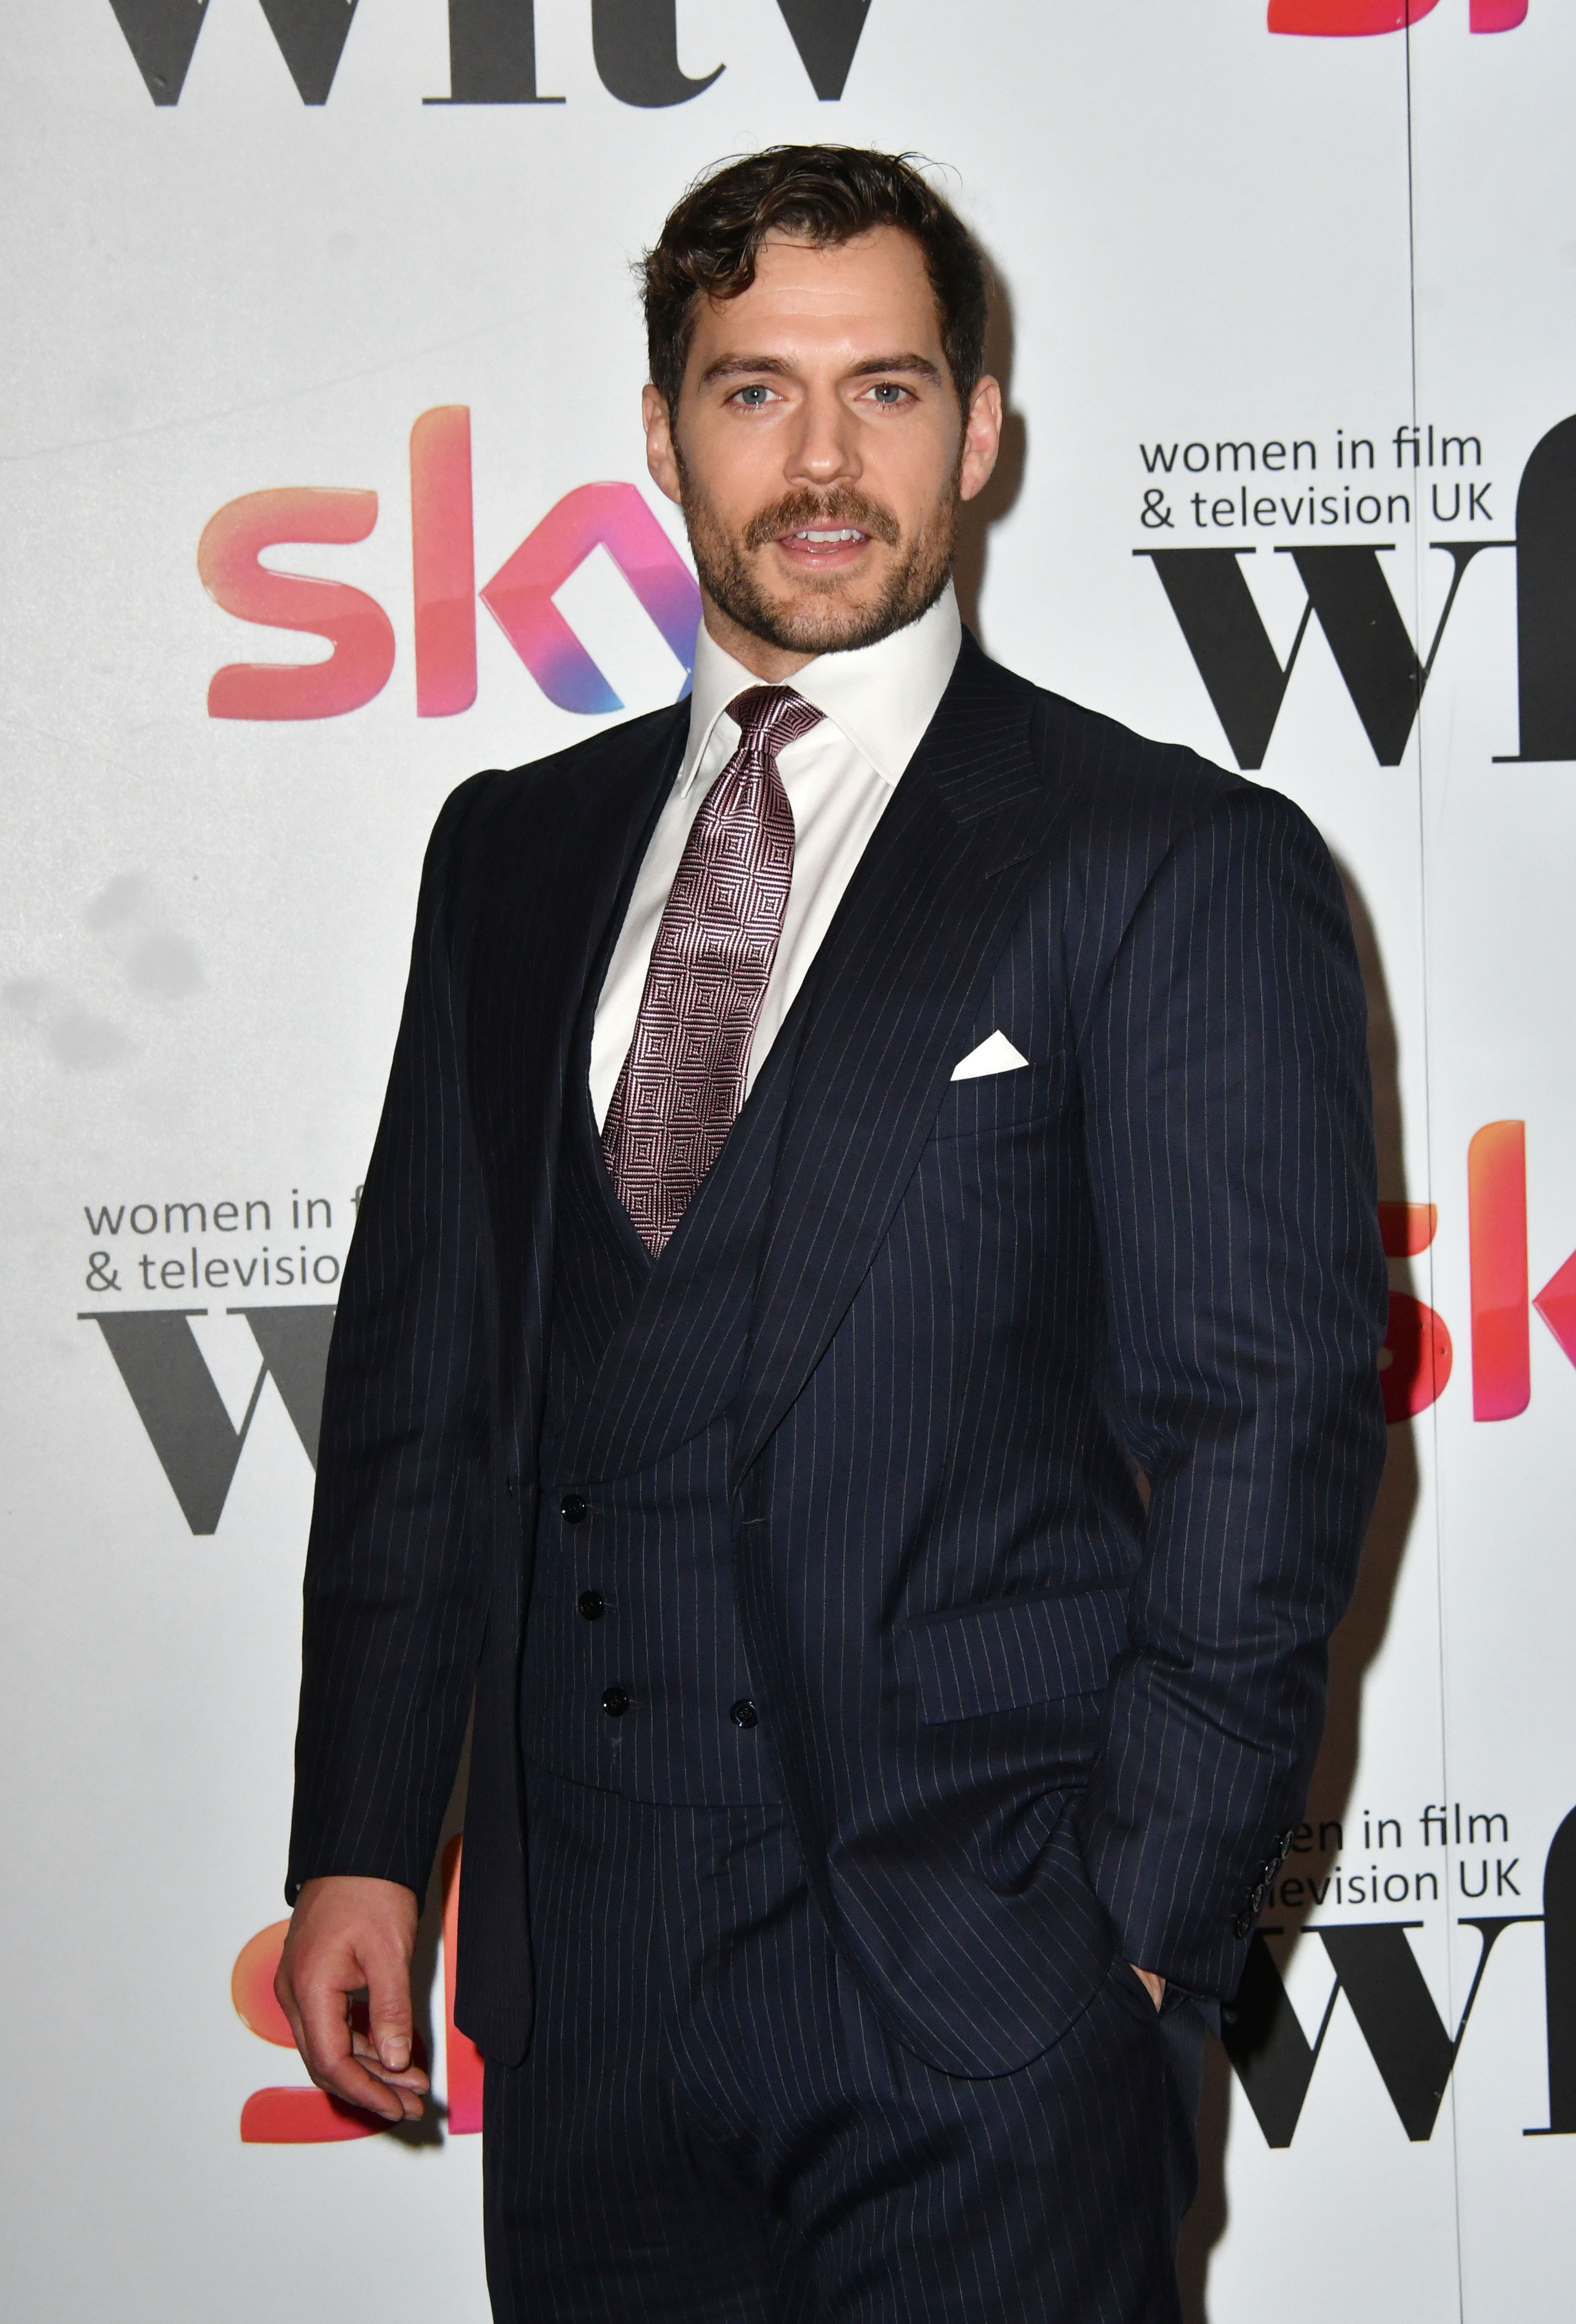 Henry Cavill attends the Sky Women in Film and TV Awards in London on Dec. 1, 2017.